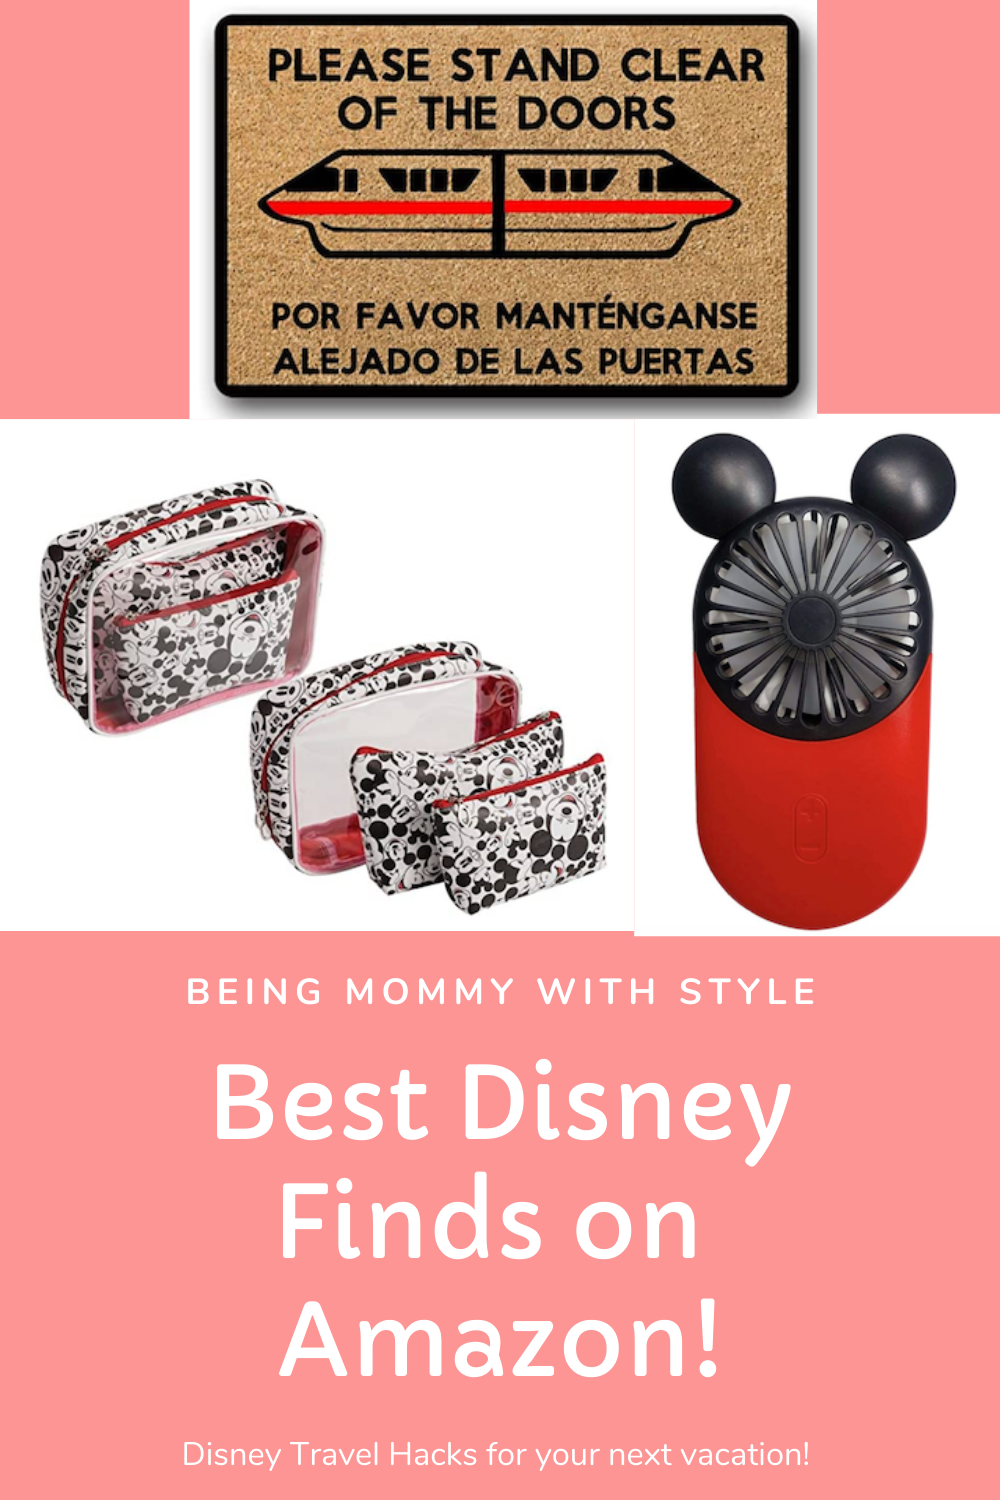 Best Disney Finds on Amazon - PIN